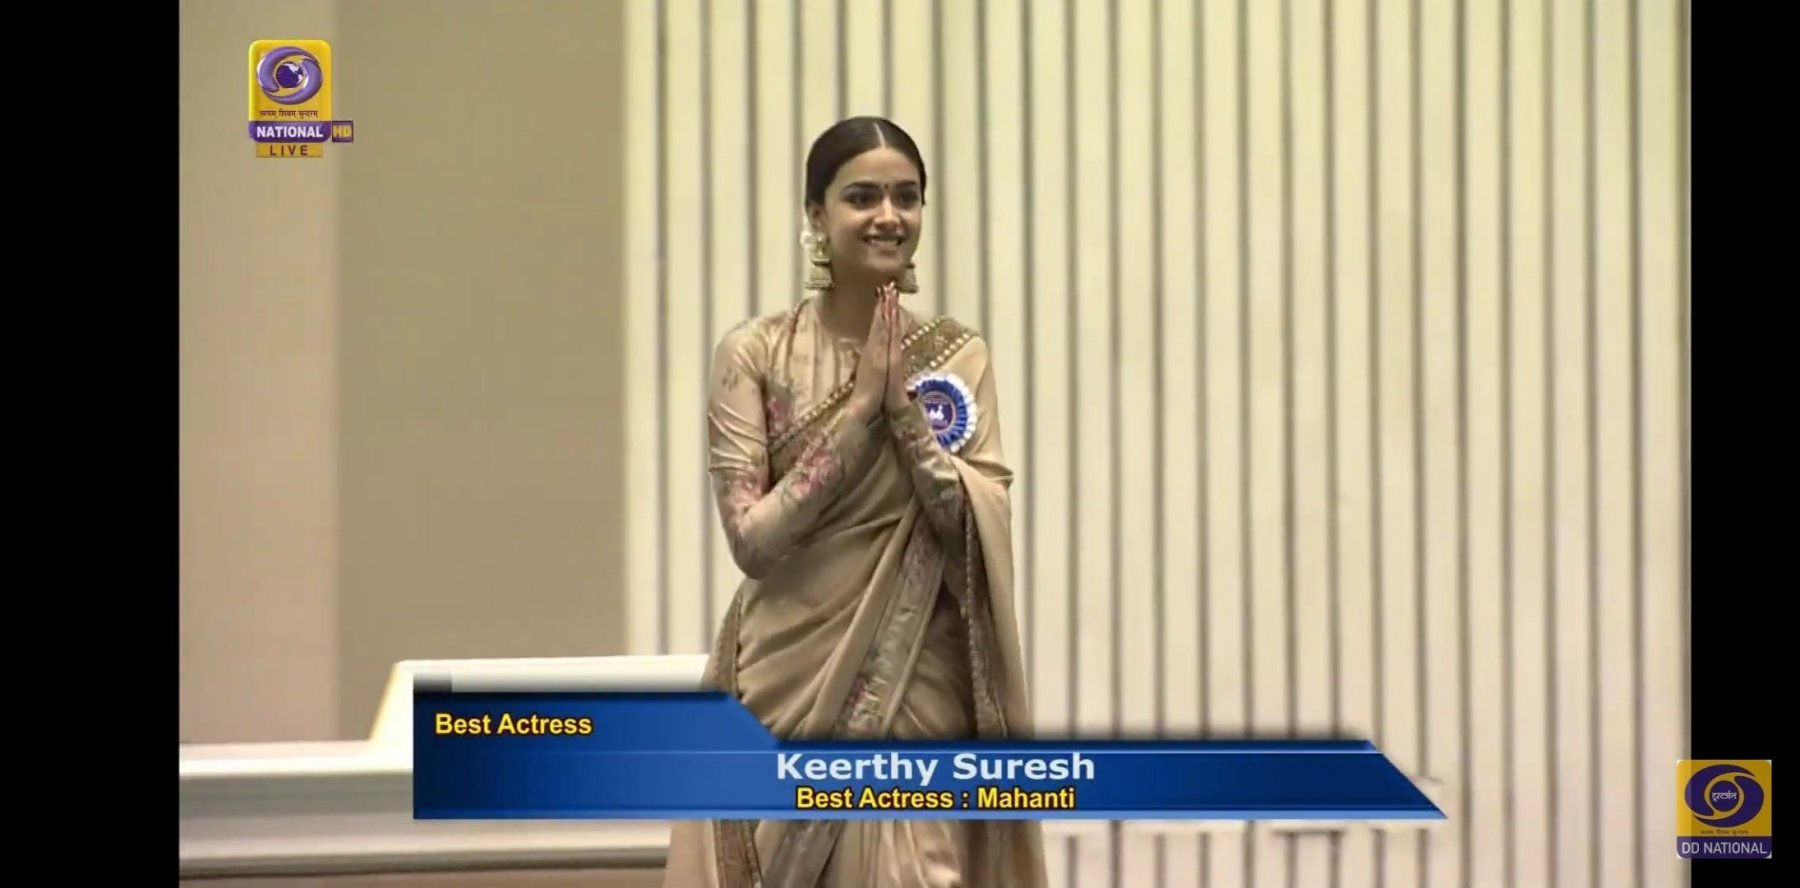 Keerthi-Suresh-national-award-photo8